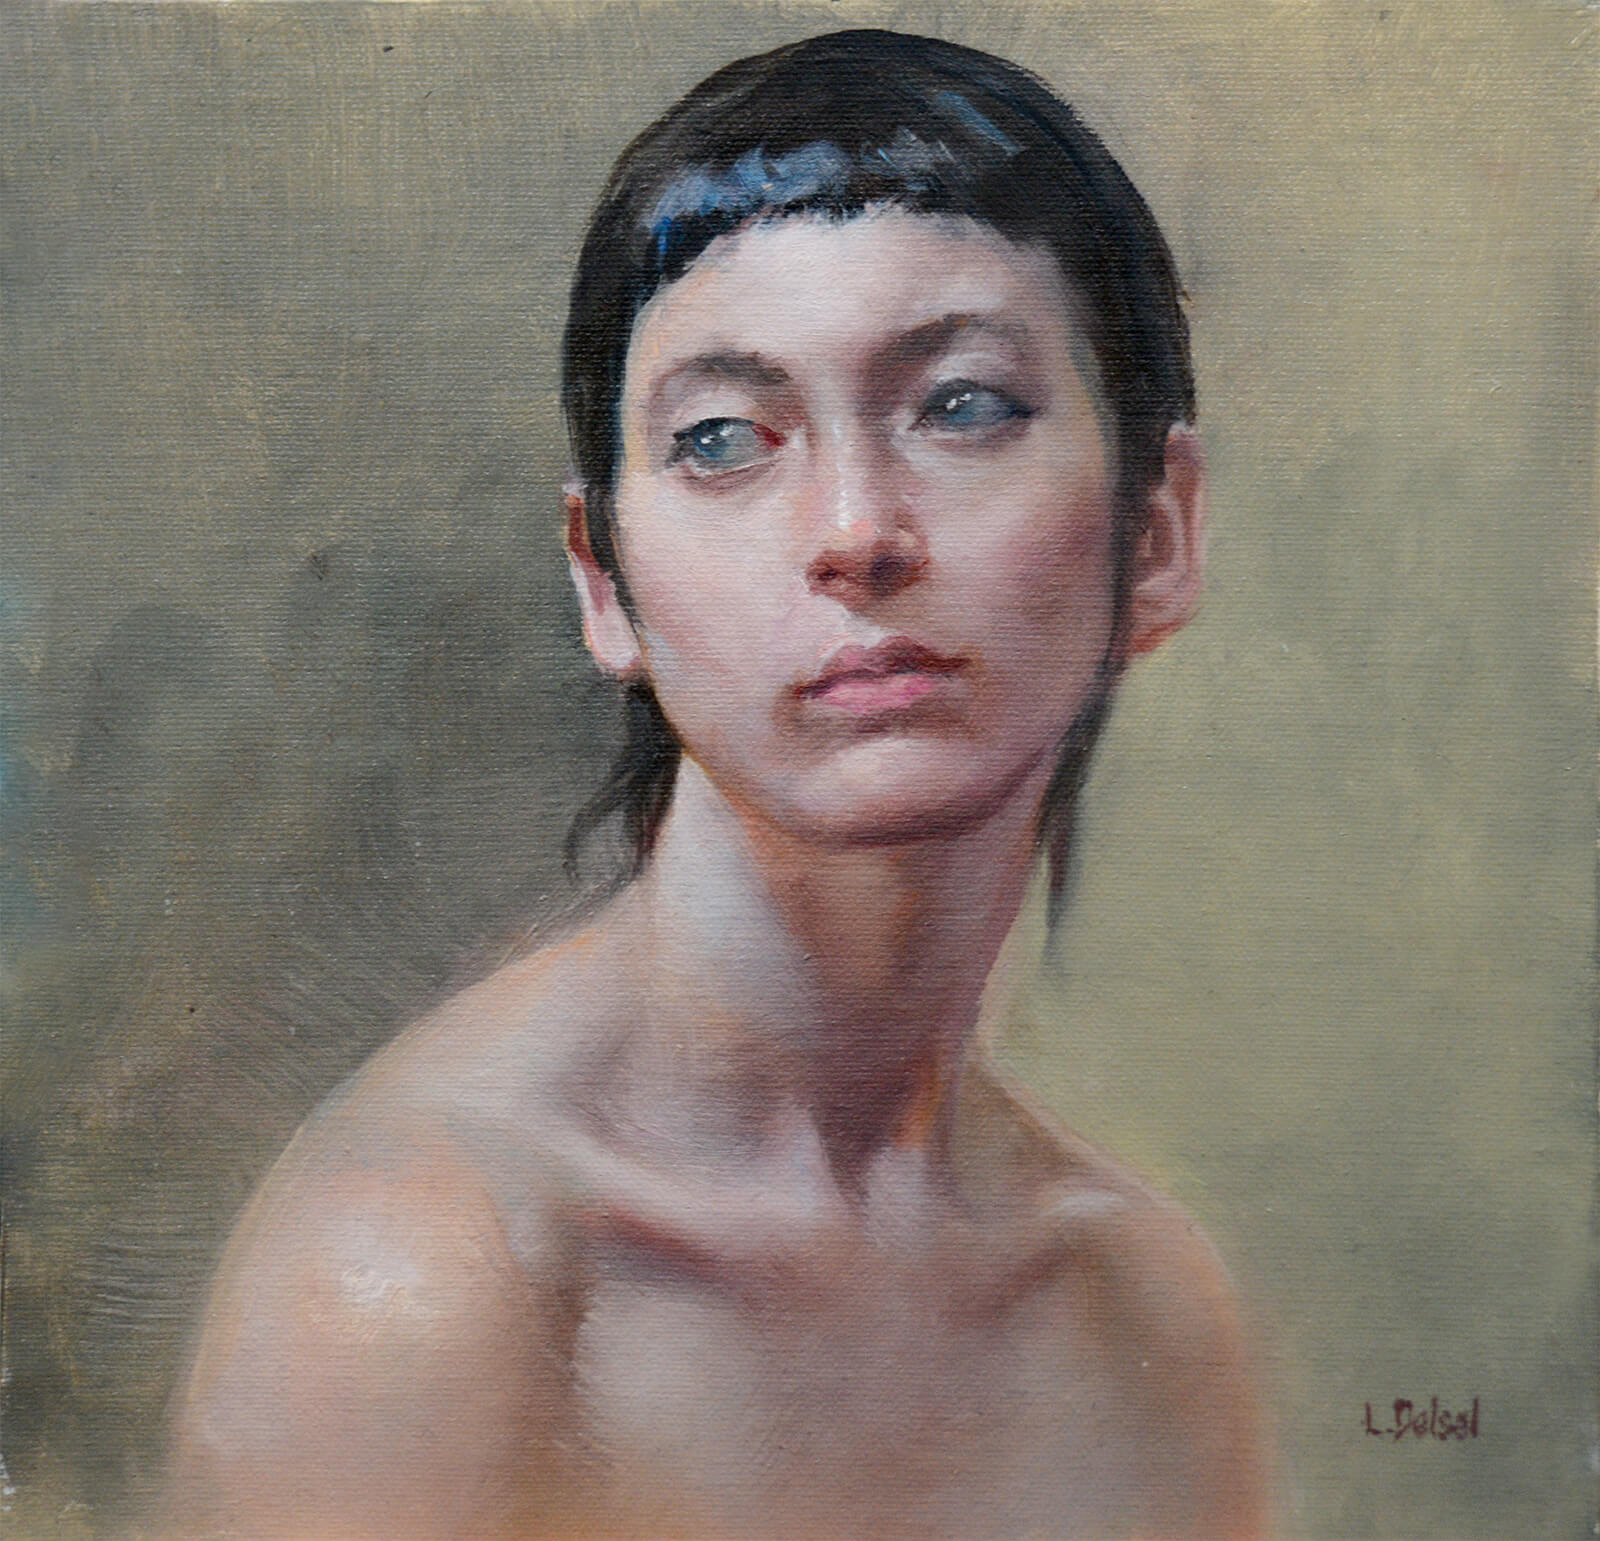 Portrait of a woman with black hair and bare shoulders gazing left